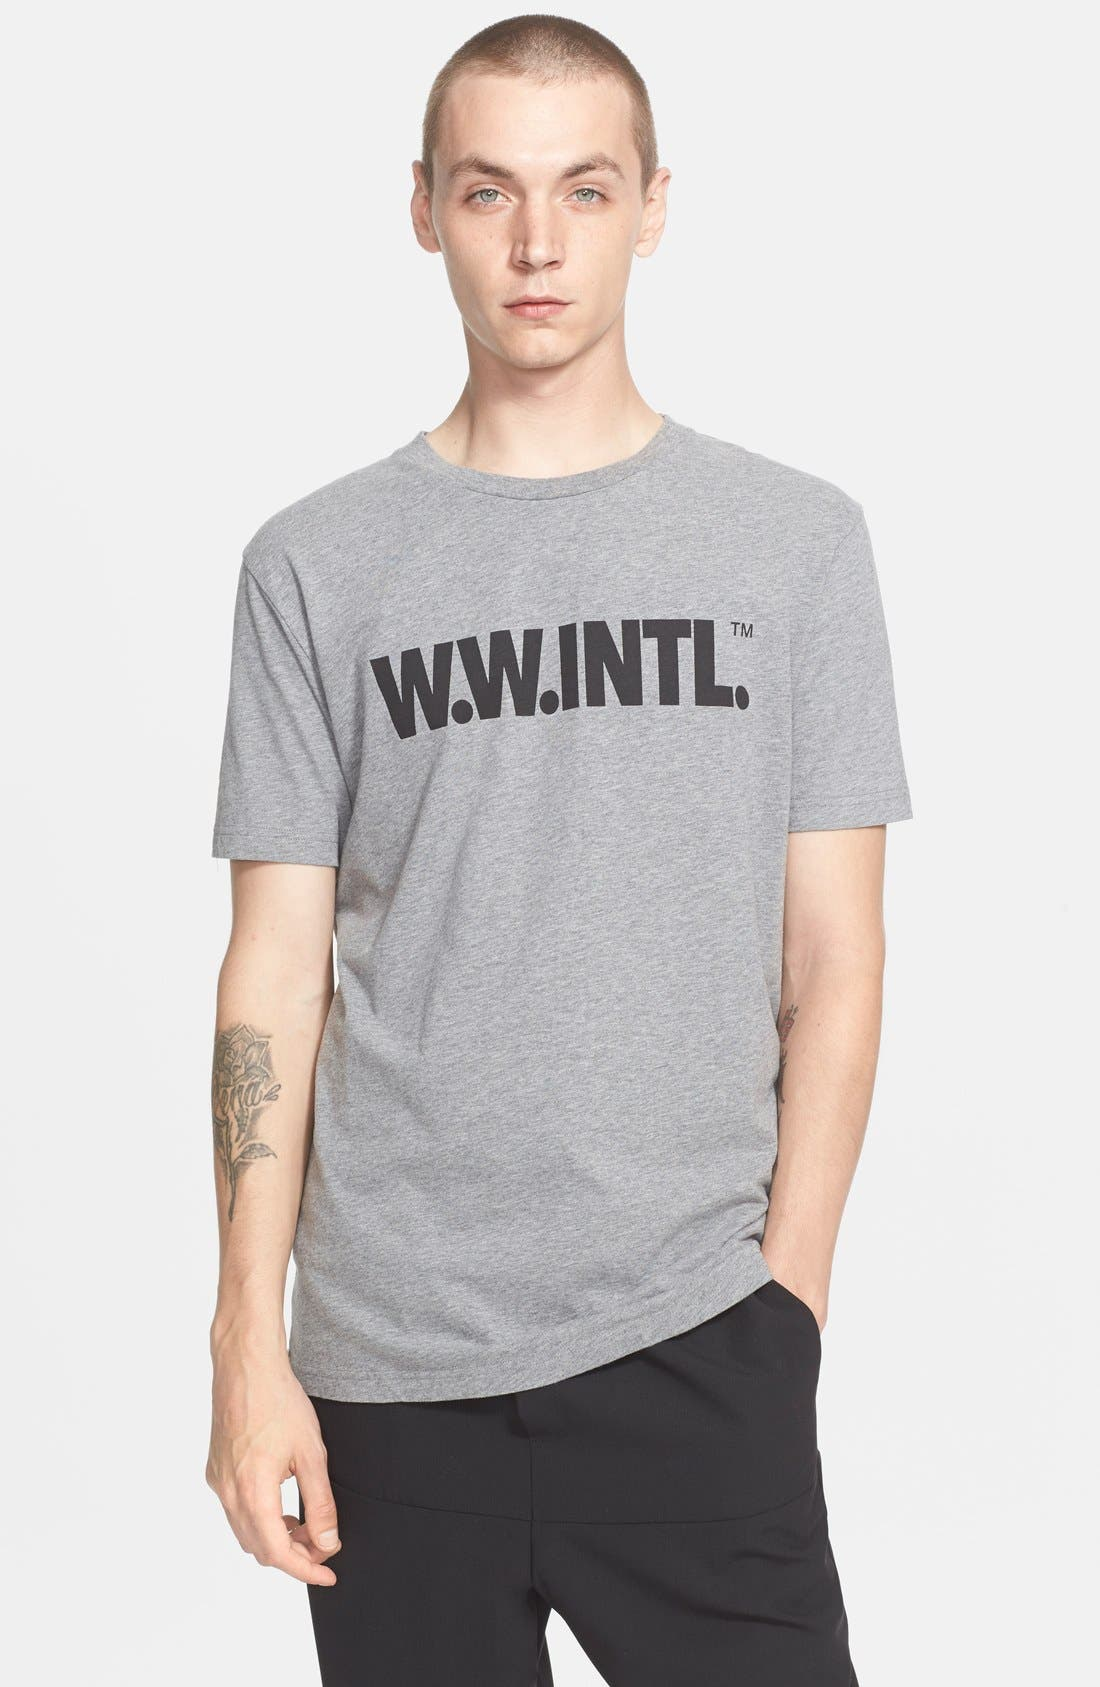 'W.W. INTL' Graphic T-Shirt,                             Main thumbnail 1, color,                             020